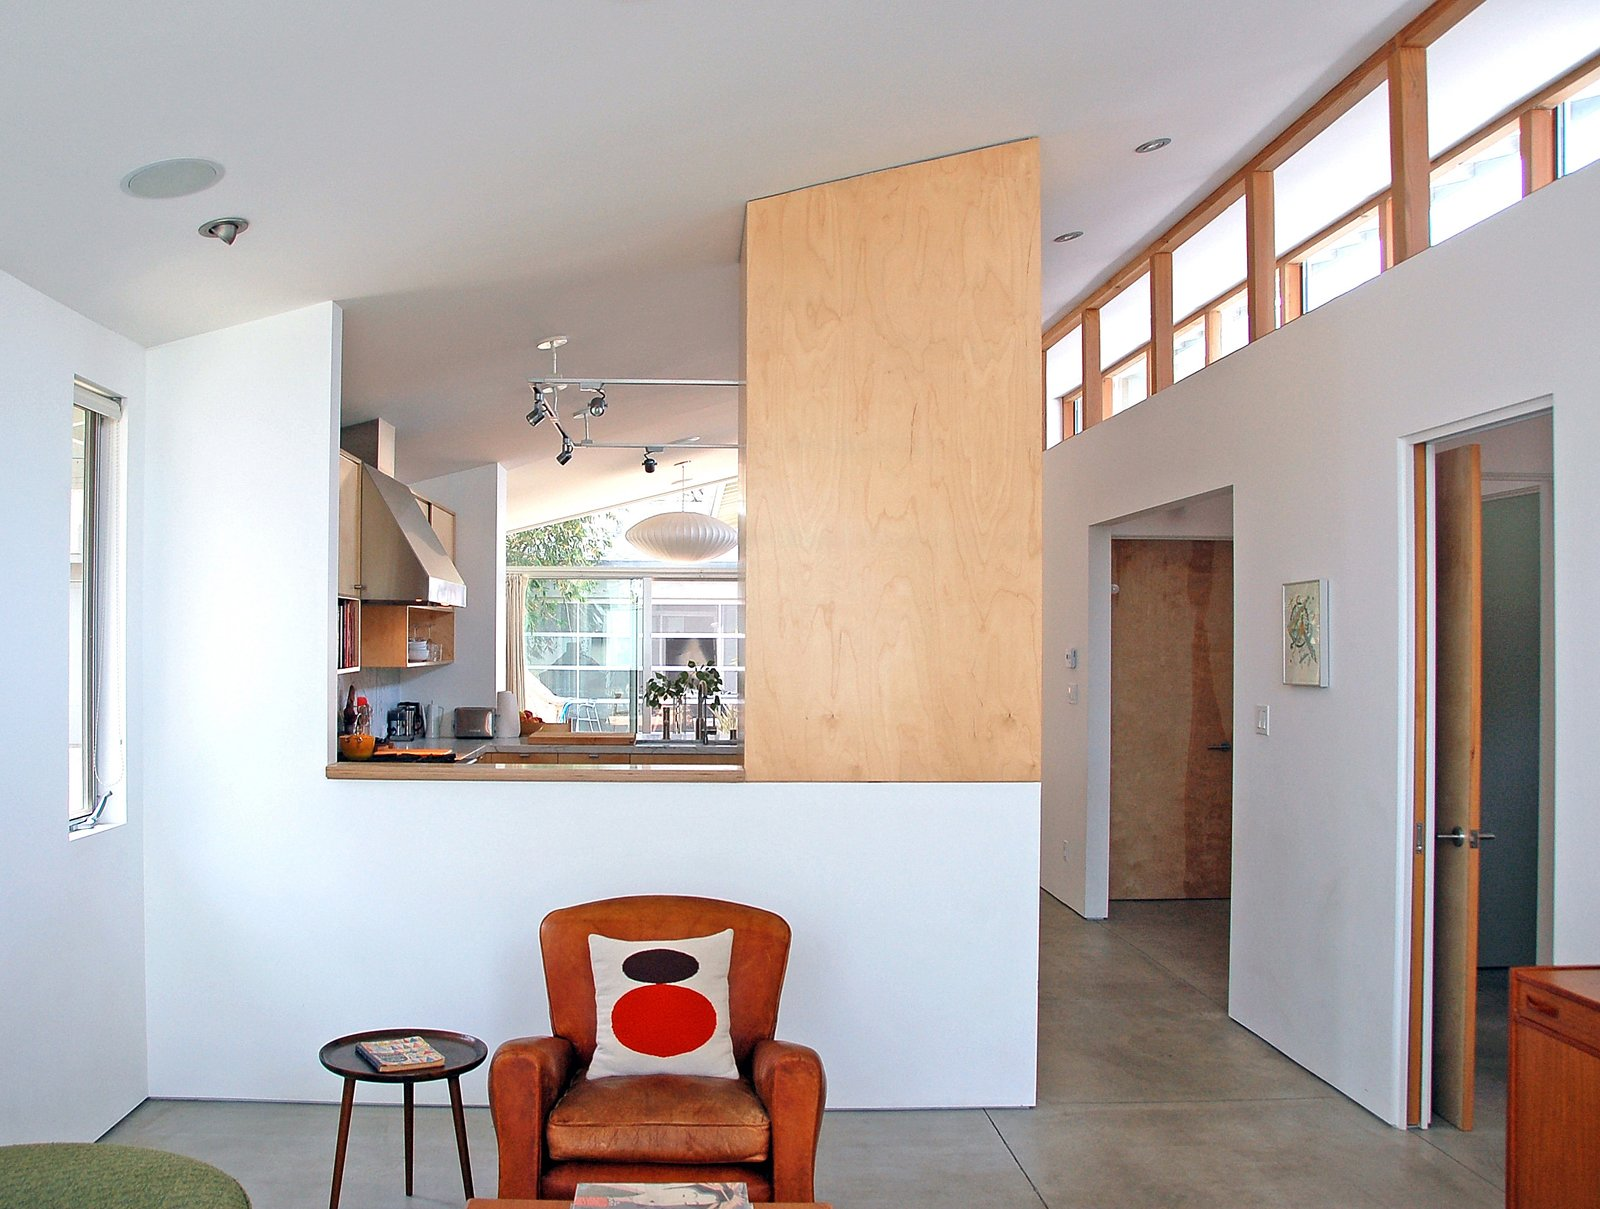 Oreck incorporated a pitched ceiling to allow light in from all sides, and added, beyond the series of structural beams, clerestory windows he describes as âsort of a light spine that runs through most of the house.â To maximize the feeling of spaciousness, the living room is partially open to the kitchen and dining room, beyond. At right is the door to the third bedroom/office and the rectangular opening leads to a bedroom and bathroom. The radiant-heat floors are powered by the sun: âIt just seemed silly to build a new house in the 21st century in Los Angeles and not utilize solar power,â says Orlovski.  Shining Examples of Clerestory Windows by Luke Hopping from Double Time: Bungalow Redux